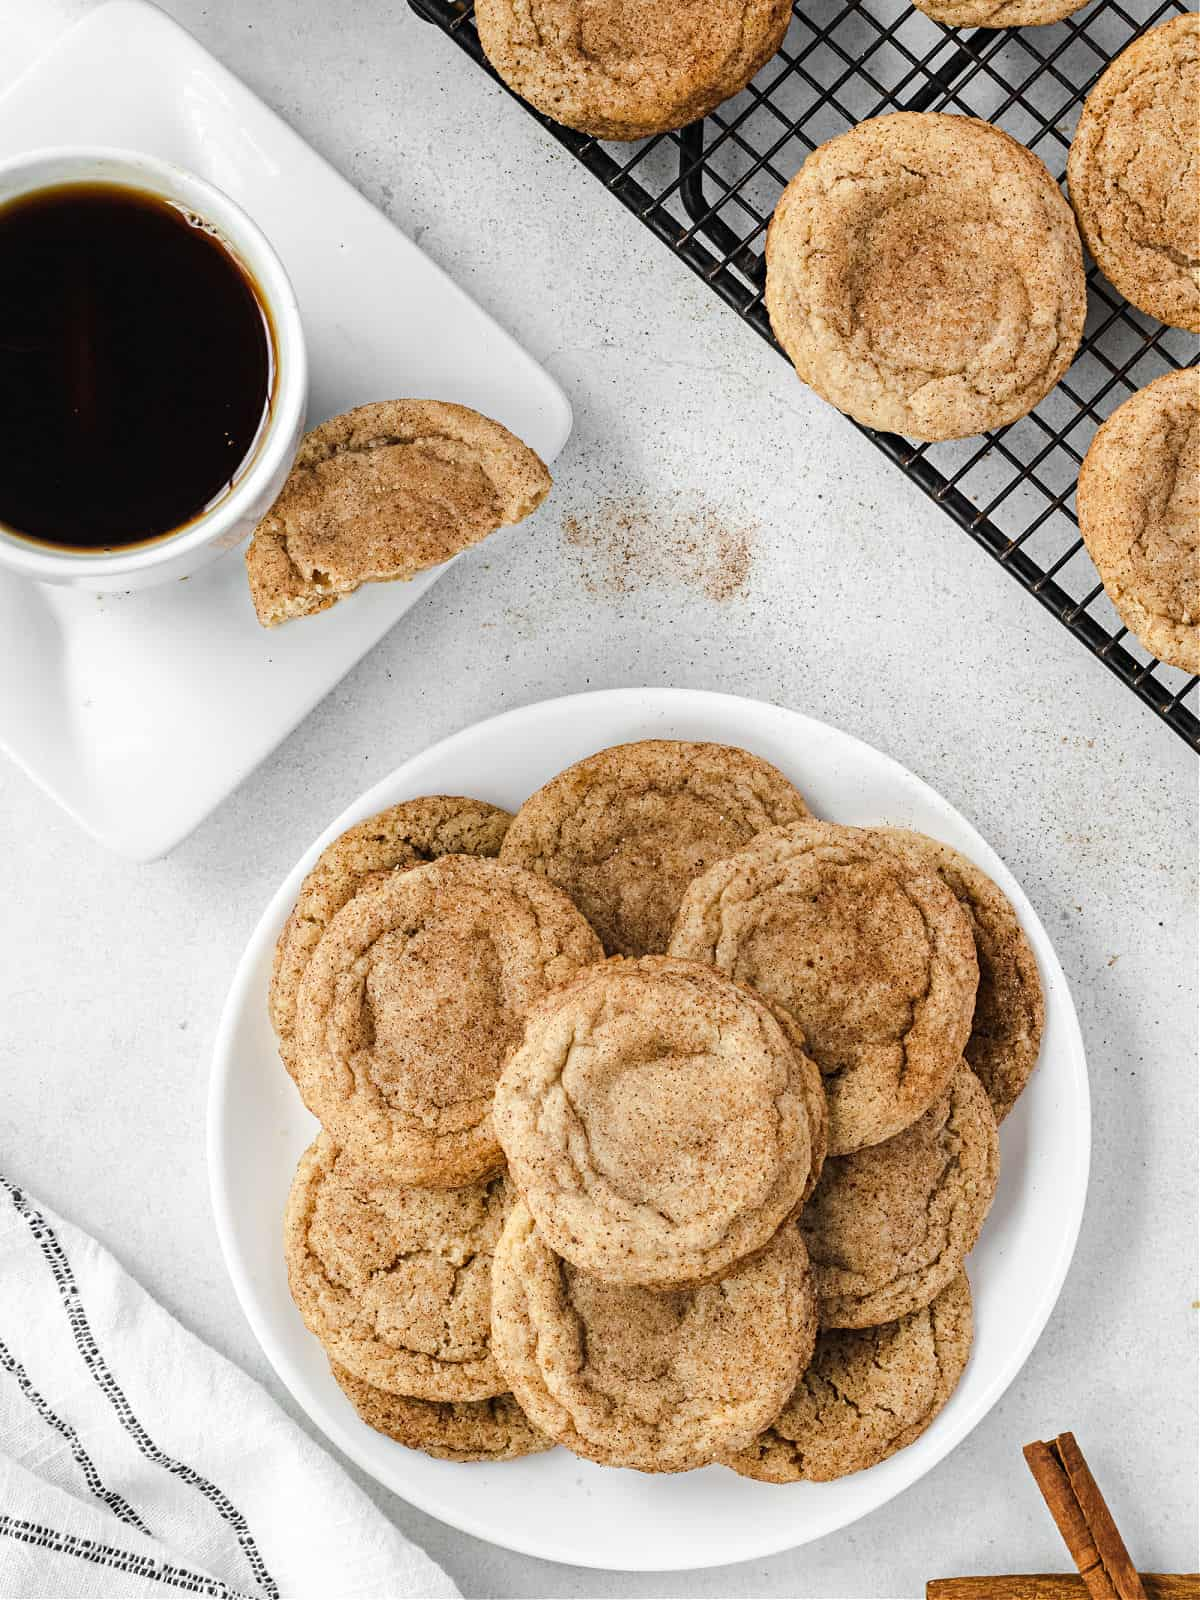 Stack of chai cookies on a plate with a cup of tea in background.